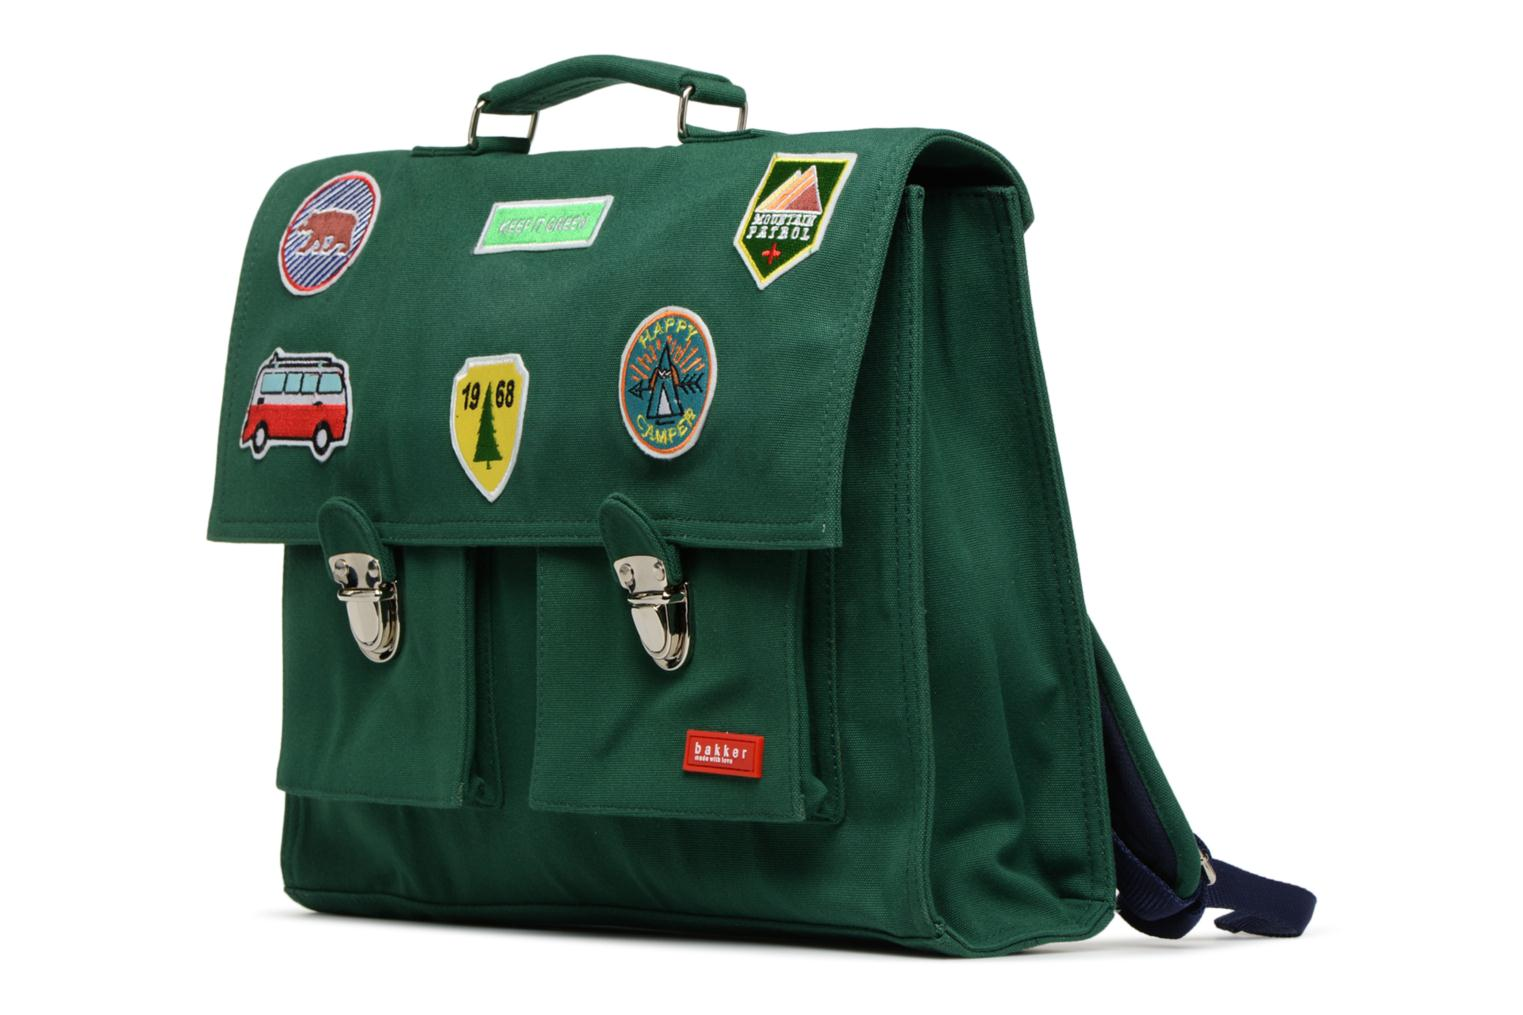 CARTABLE amp;PATCHS Green JEAN CM Bakker With Love 37 Made wxtqn1pRZ